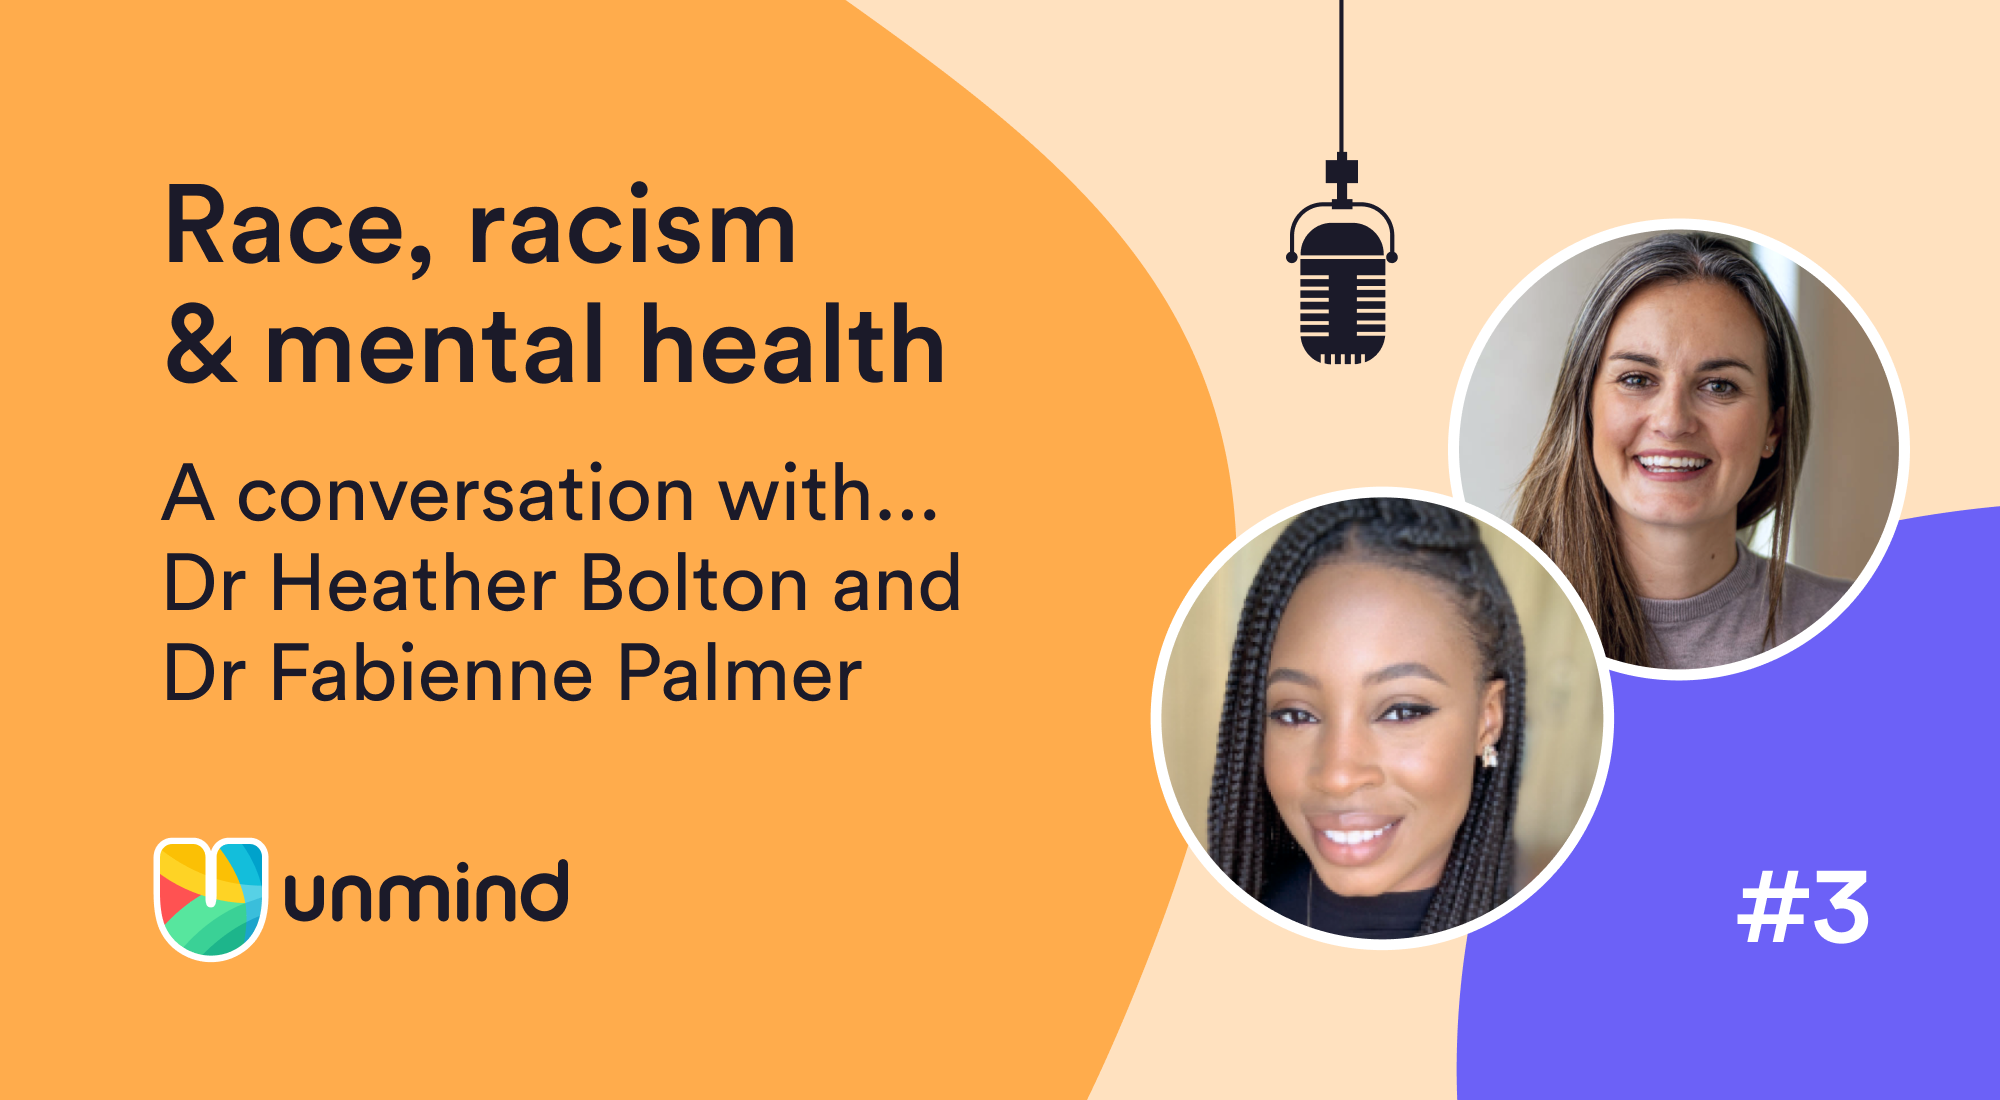 An image depicting Dr Heather Bolton and Dr Fabienne Palmer in conversation on race, racism and mental health